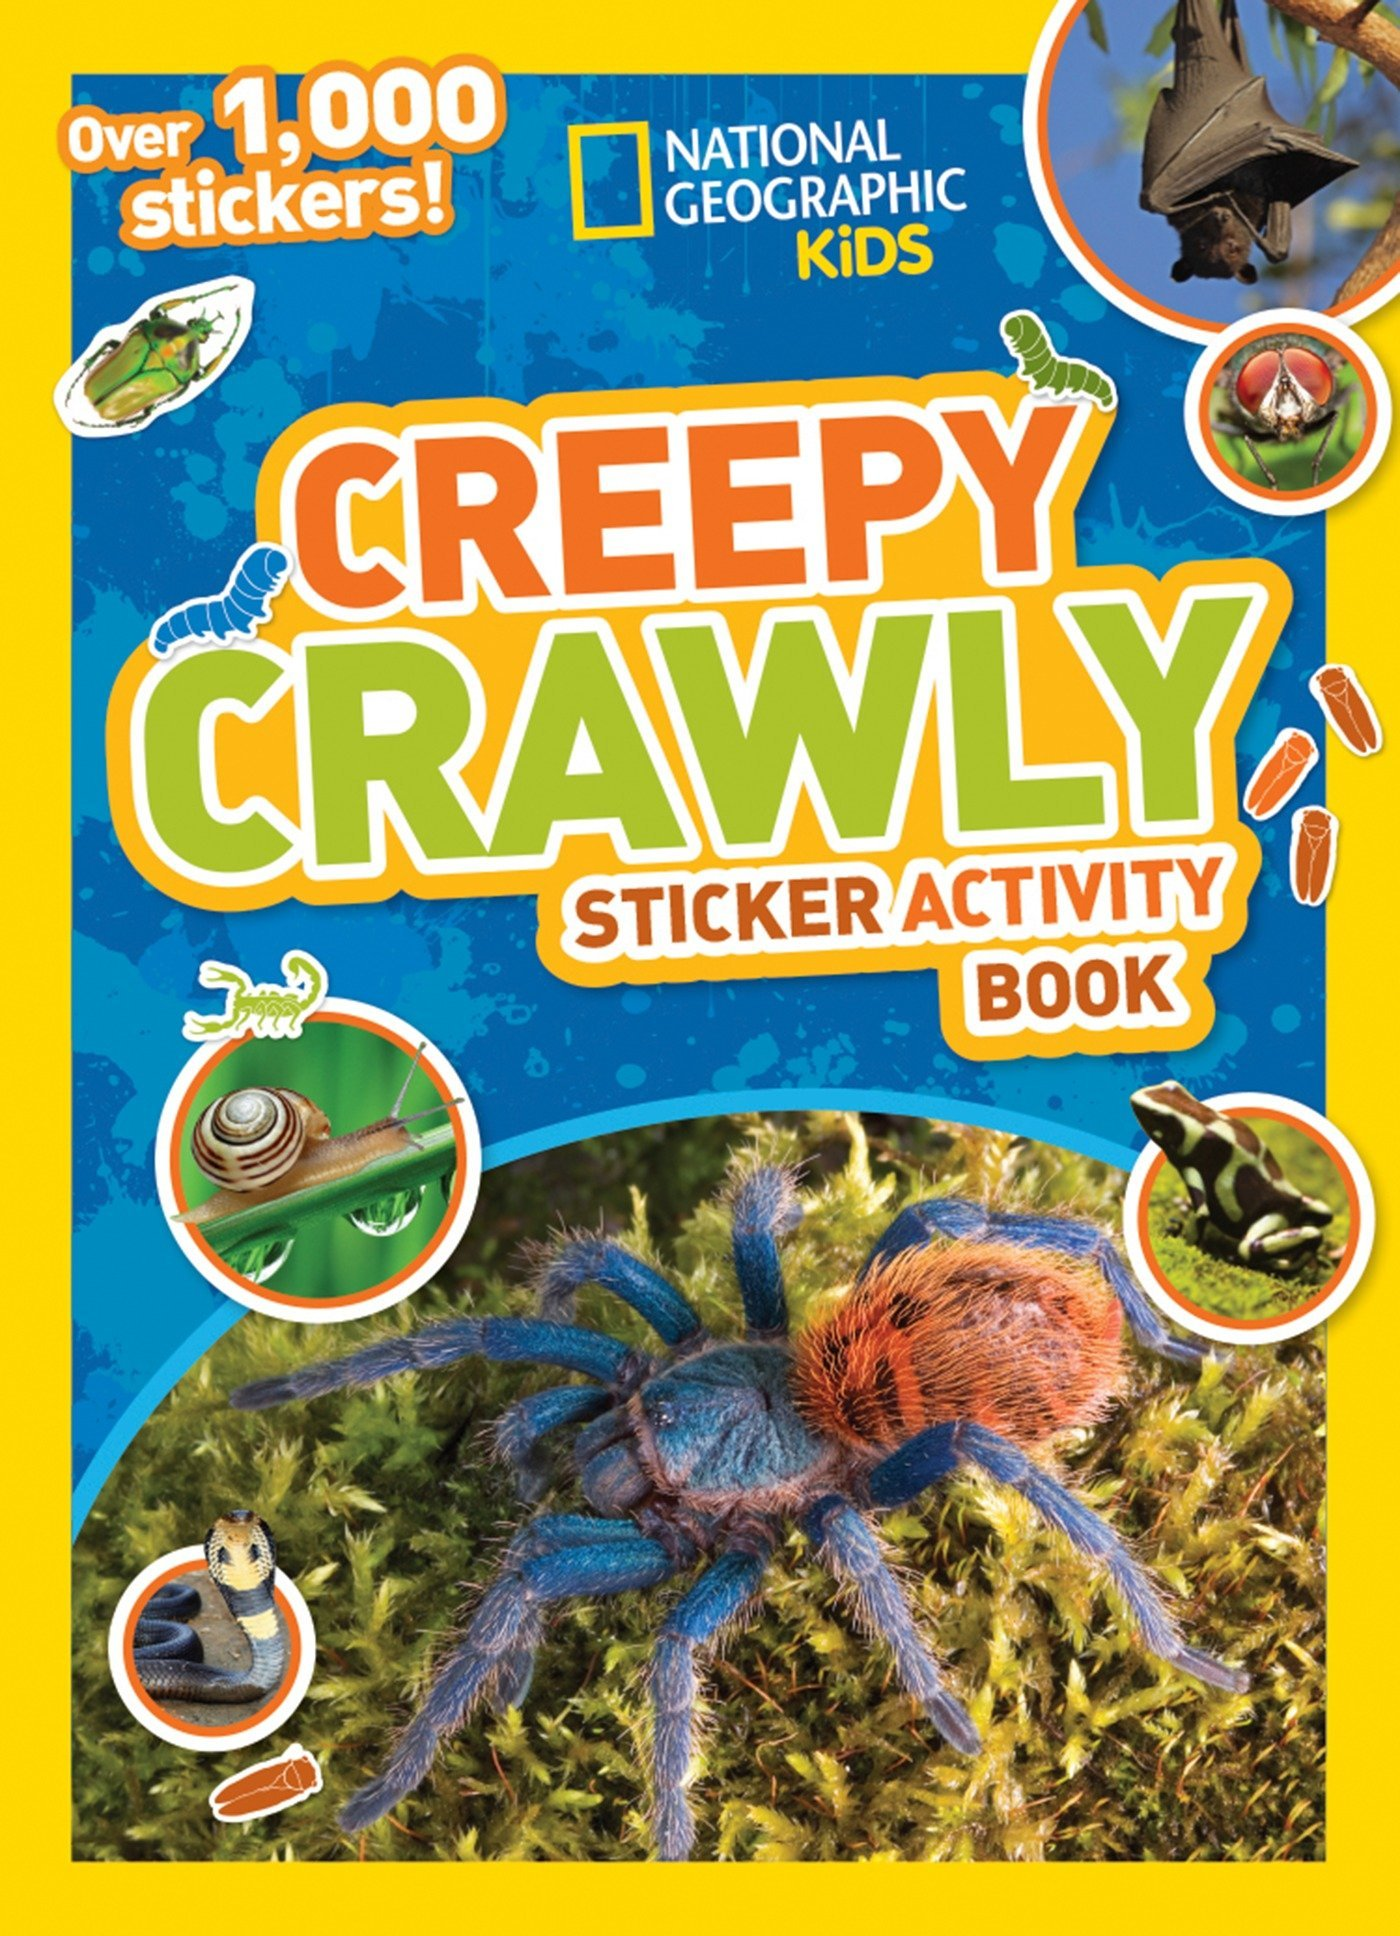 Creepy Crawly Sticker Activity Book: Over 1000 stickers! (National Geographic Sticker Activity Book)